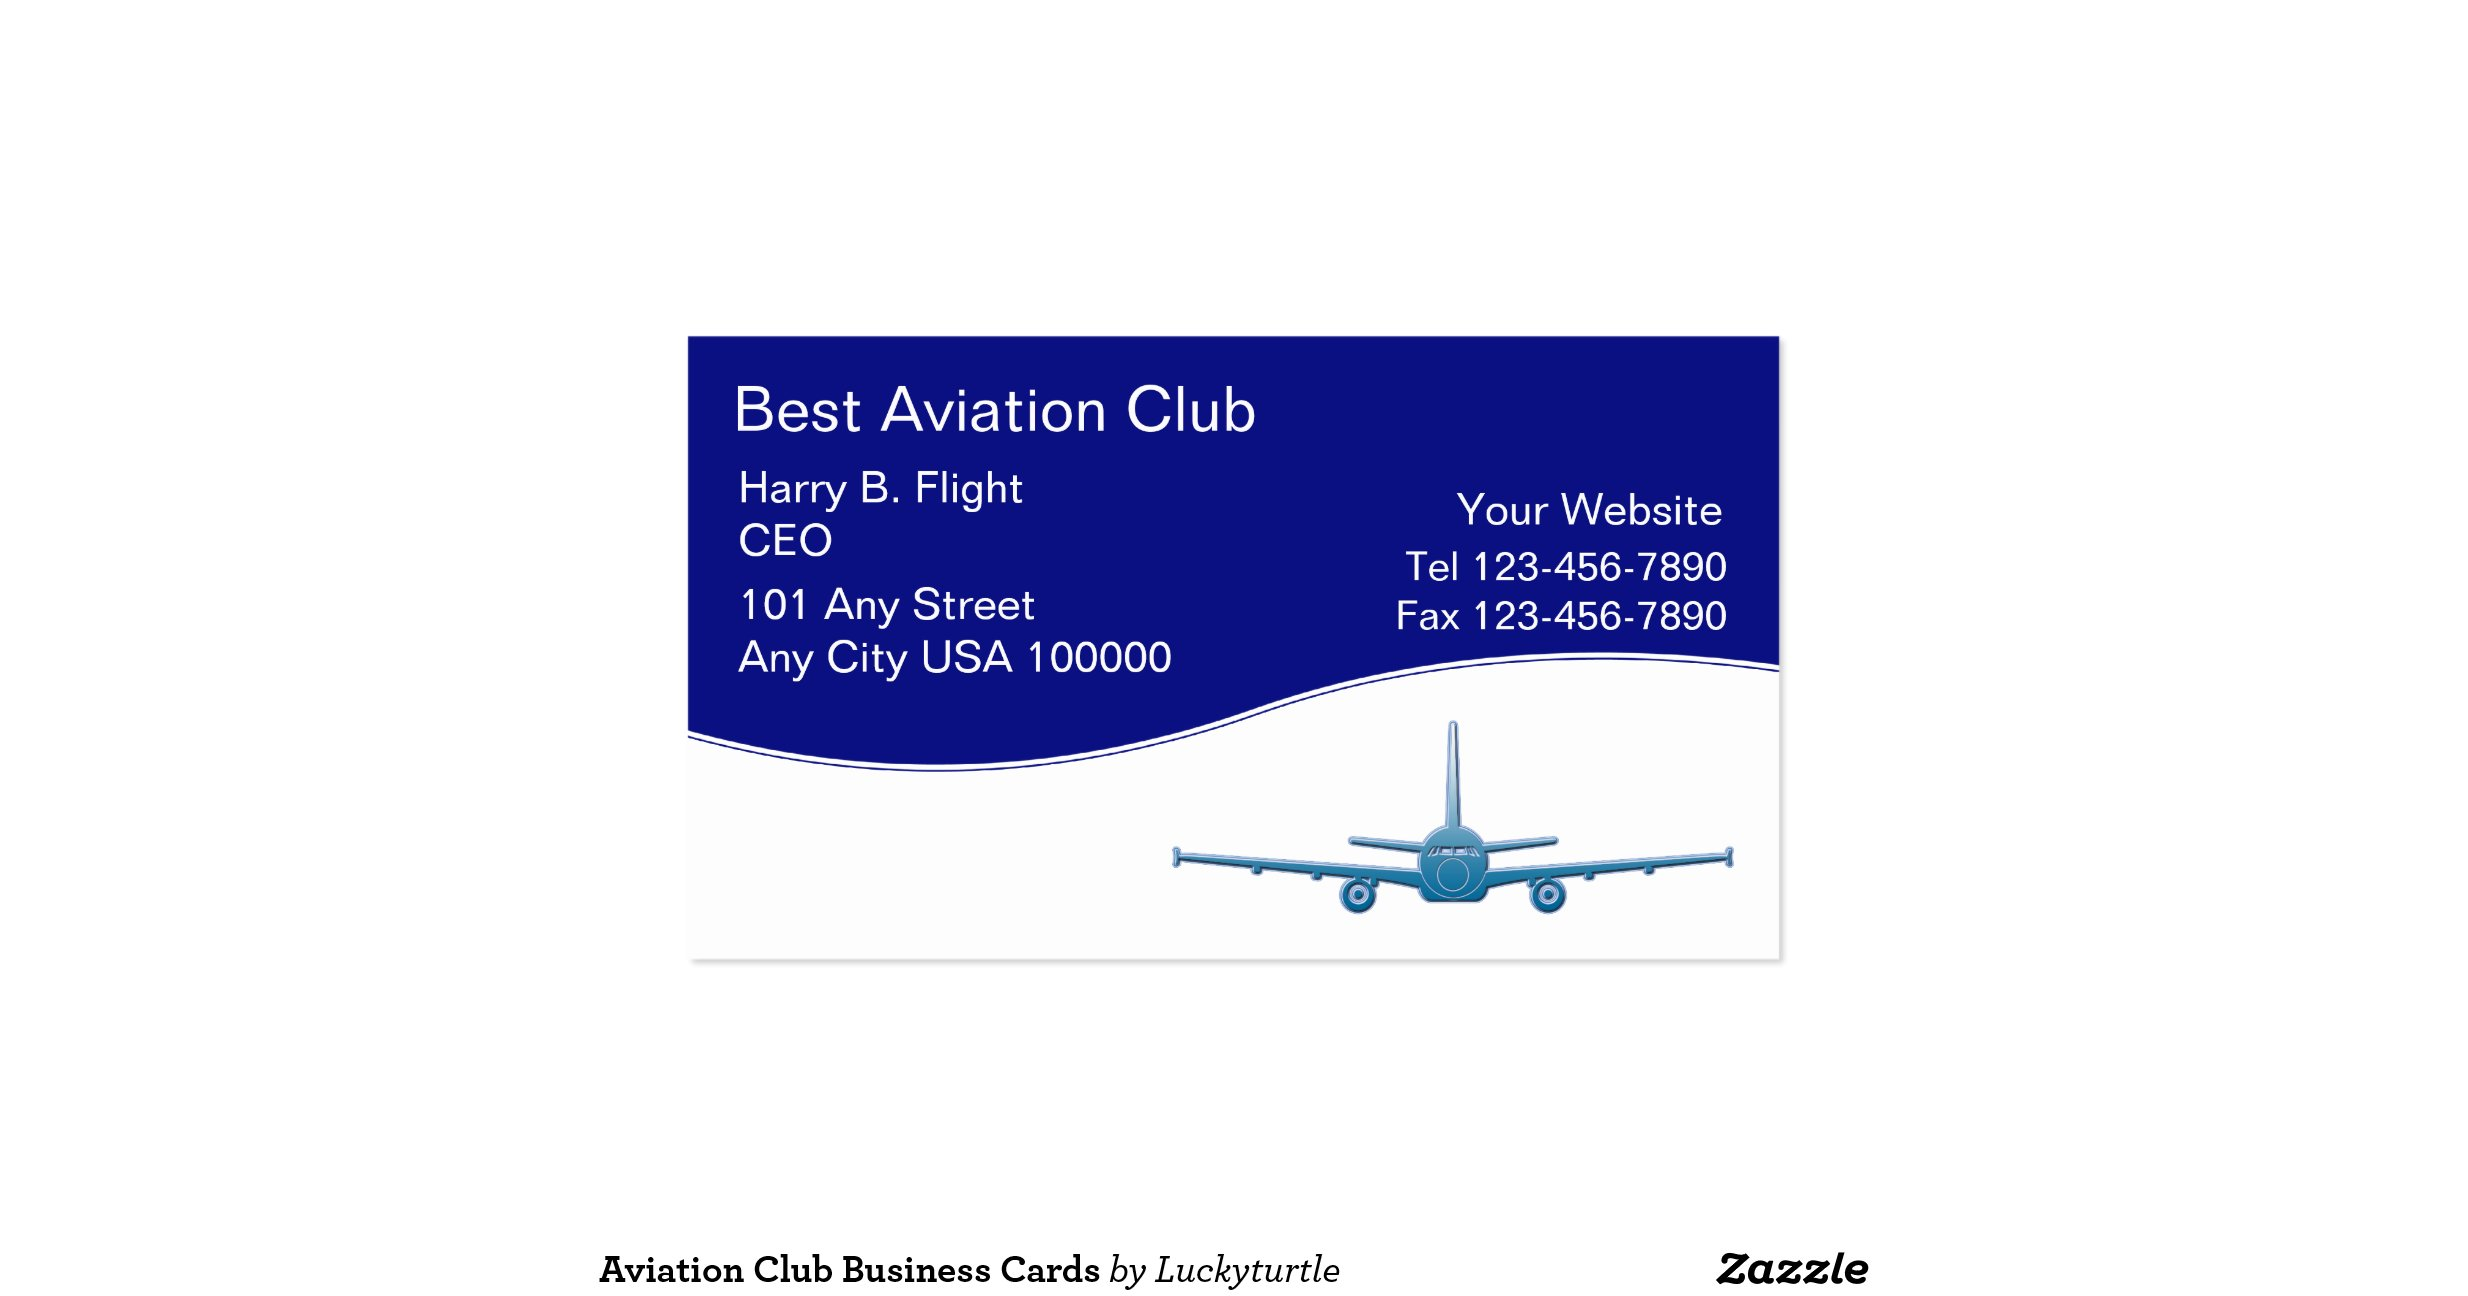 Aviation business cards templates 28 images fighter aircraft aviation business cards templates by aviation club business cards zazzle colourmoves